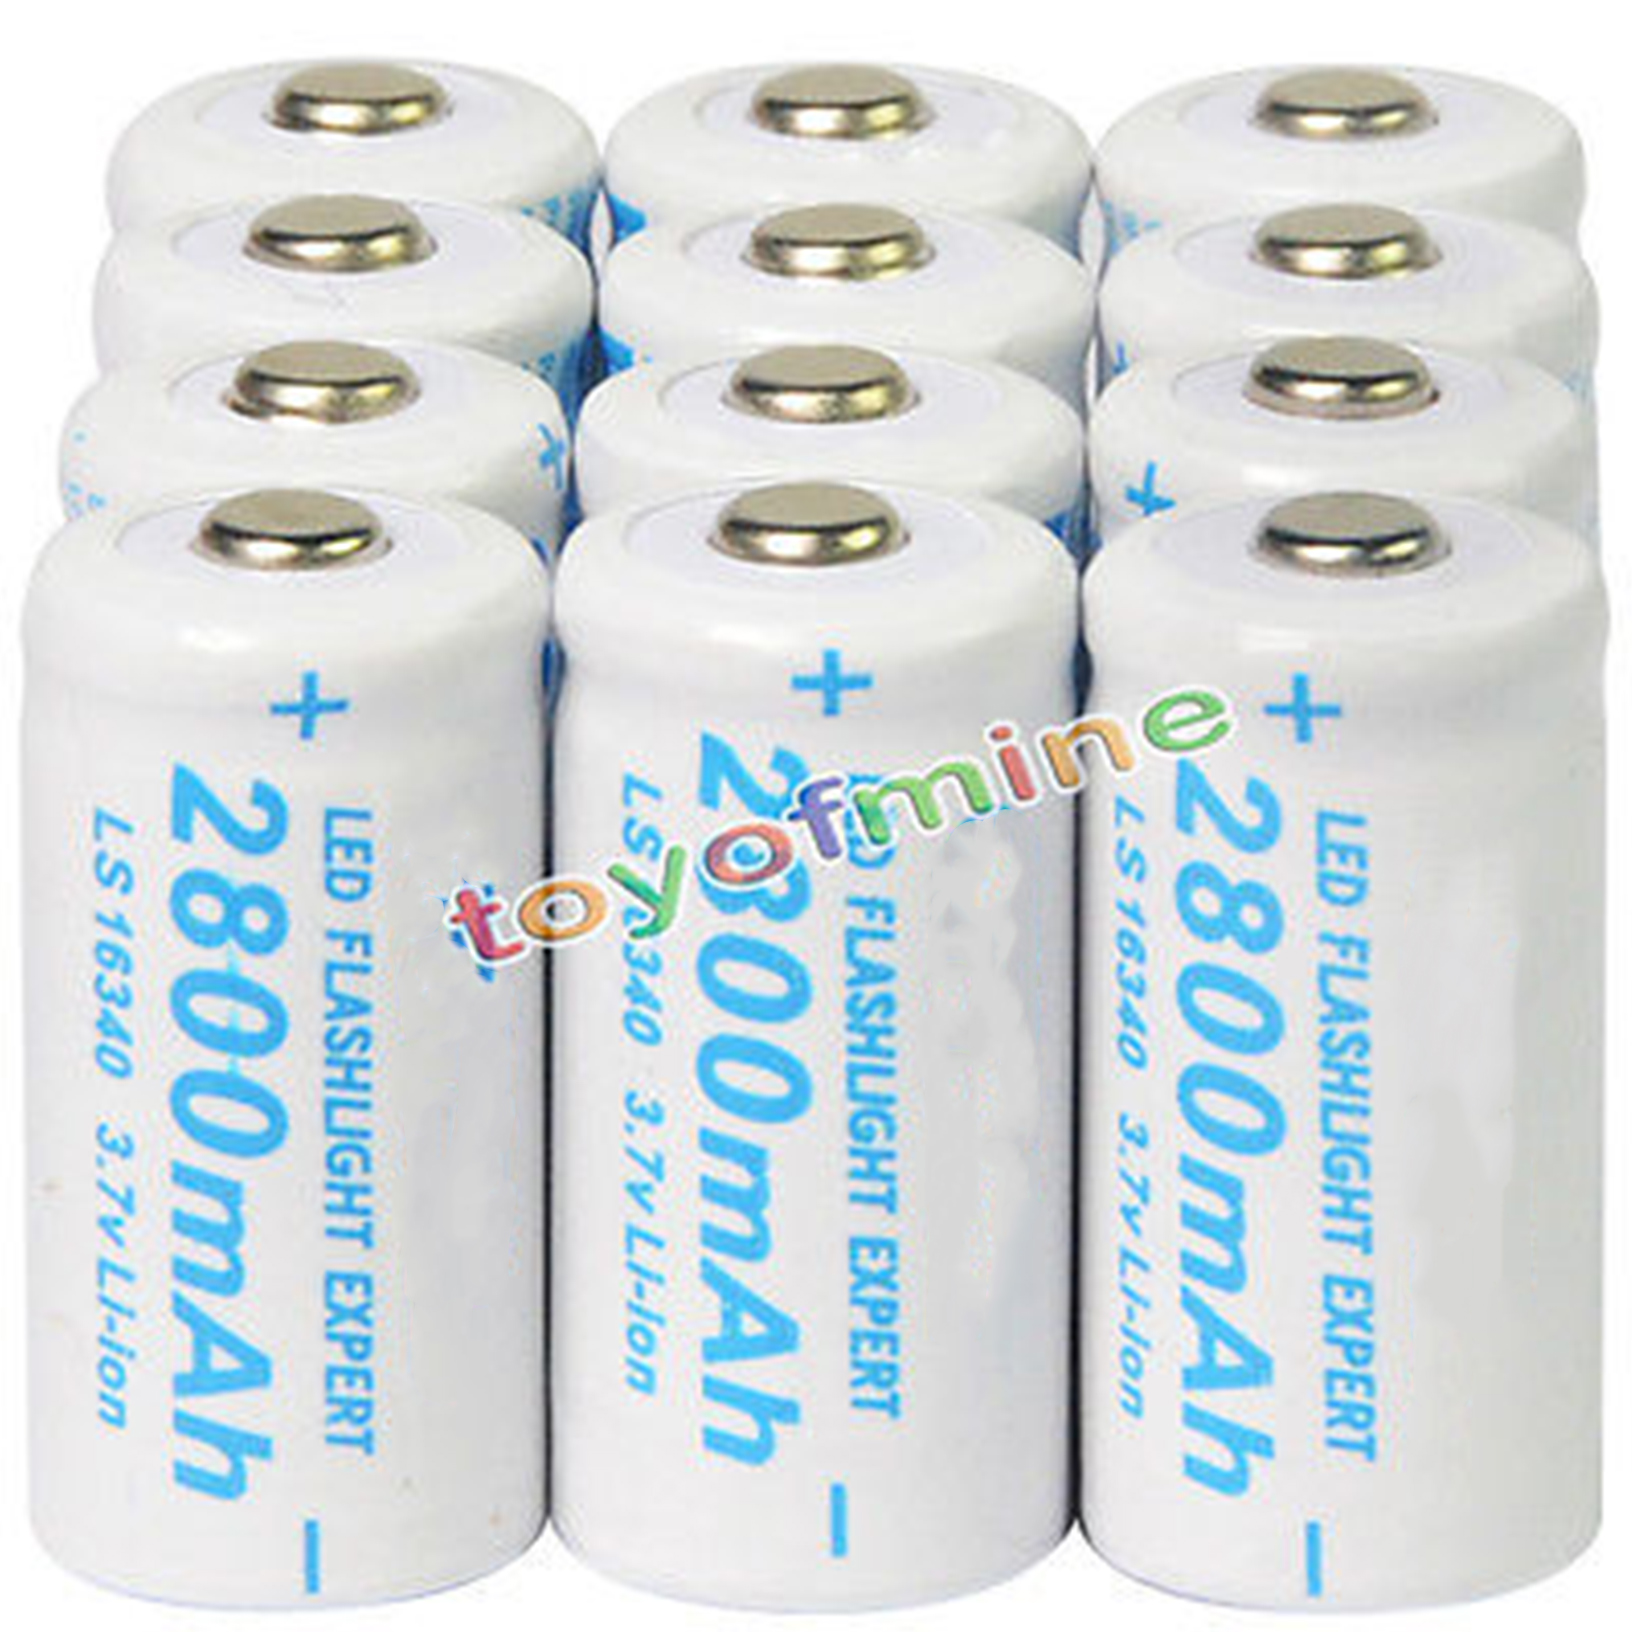 4Pcs 3.7V Li-Ion CR123A 16340 1800mAh Battery Rechargeable Batteries Charger